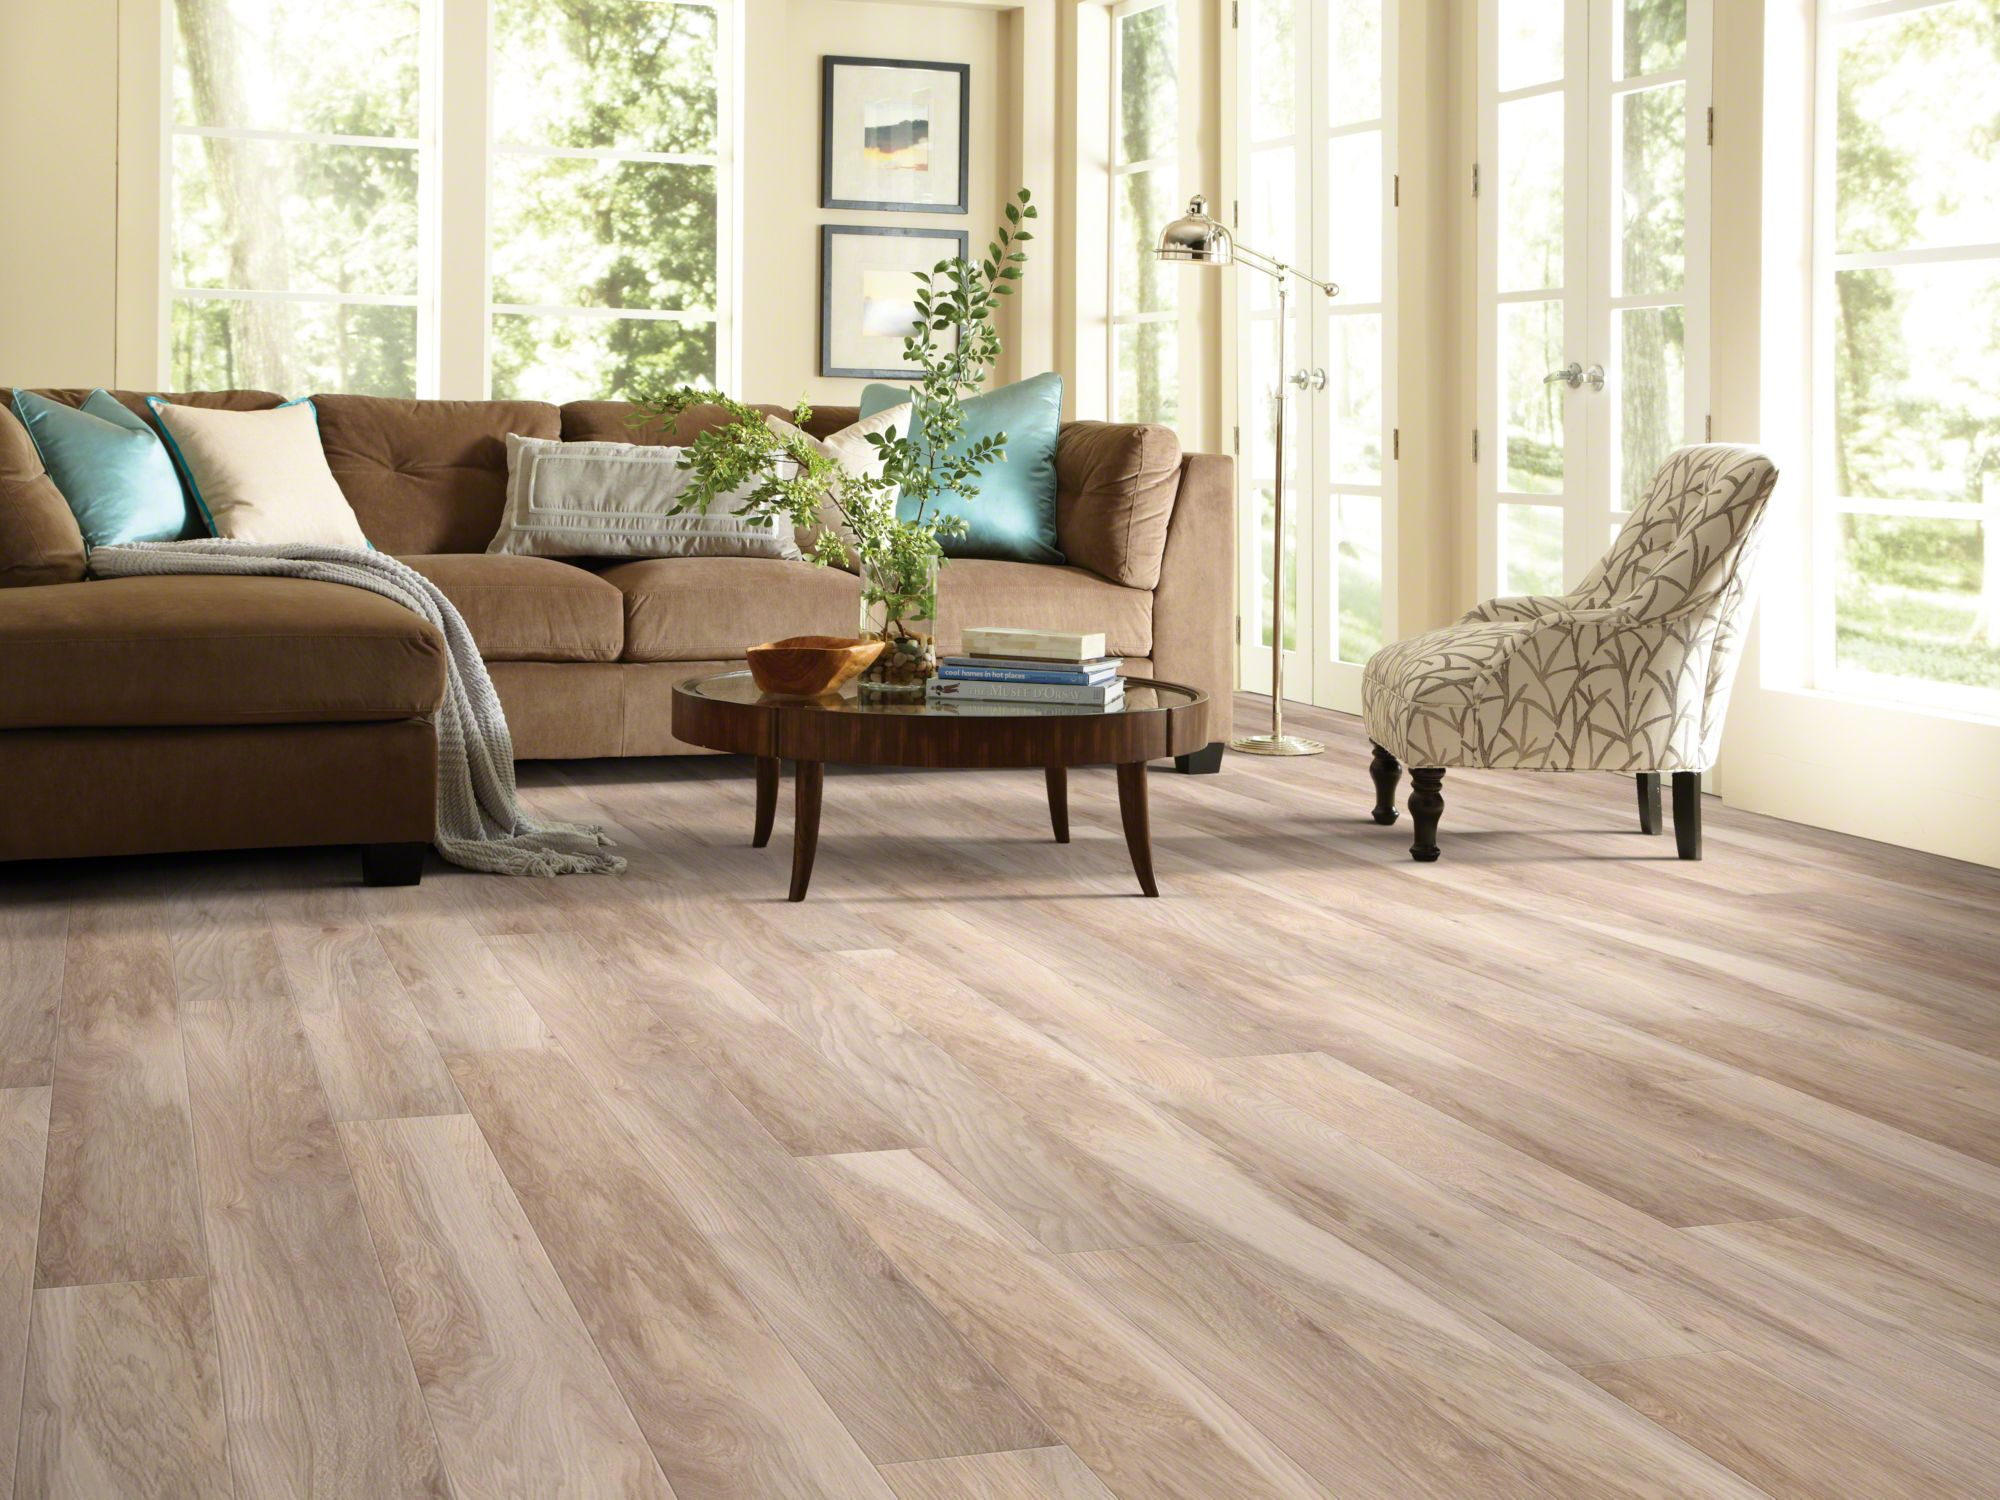 shaw laminate flooring 4 reasons to choose shaw laminate floors KIMKRTX